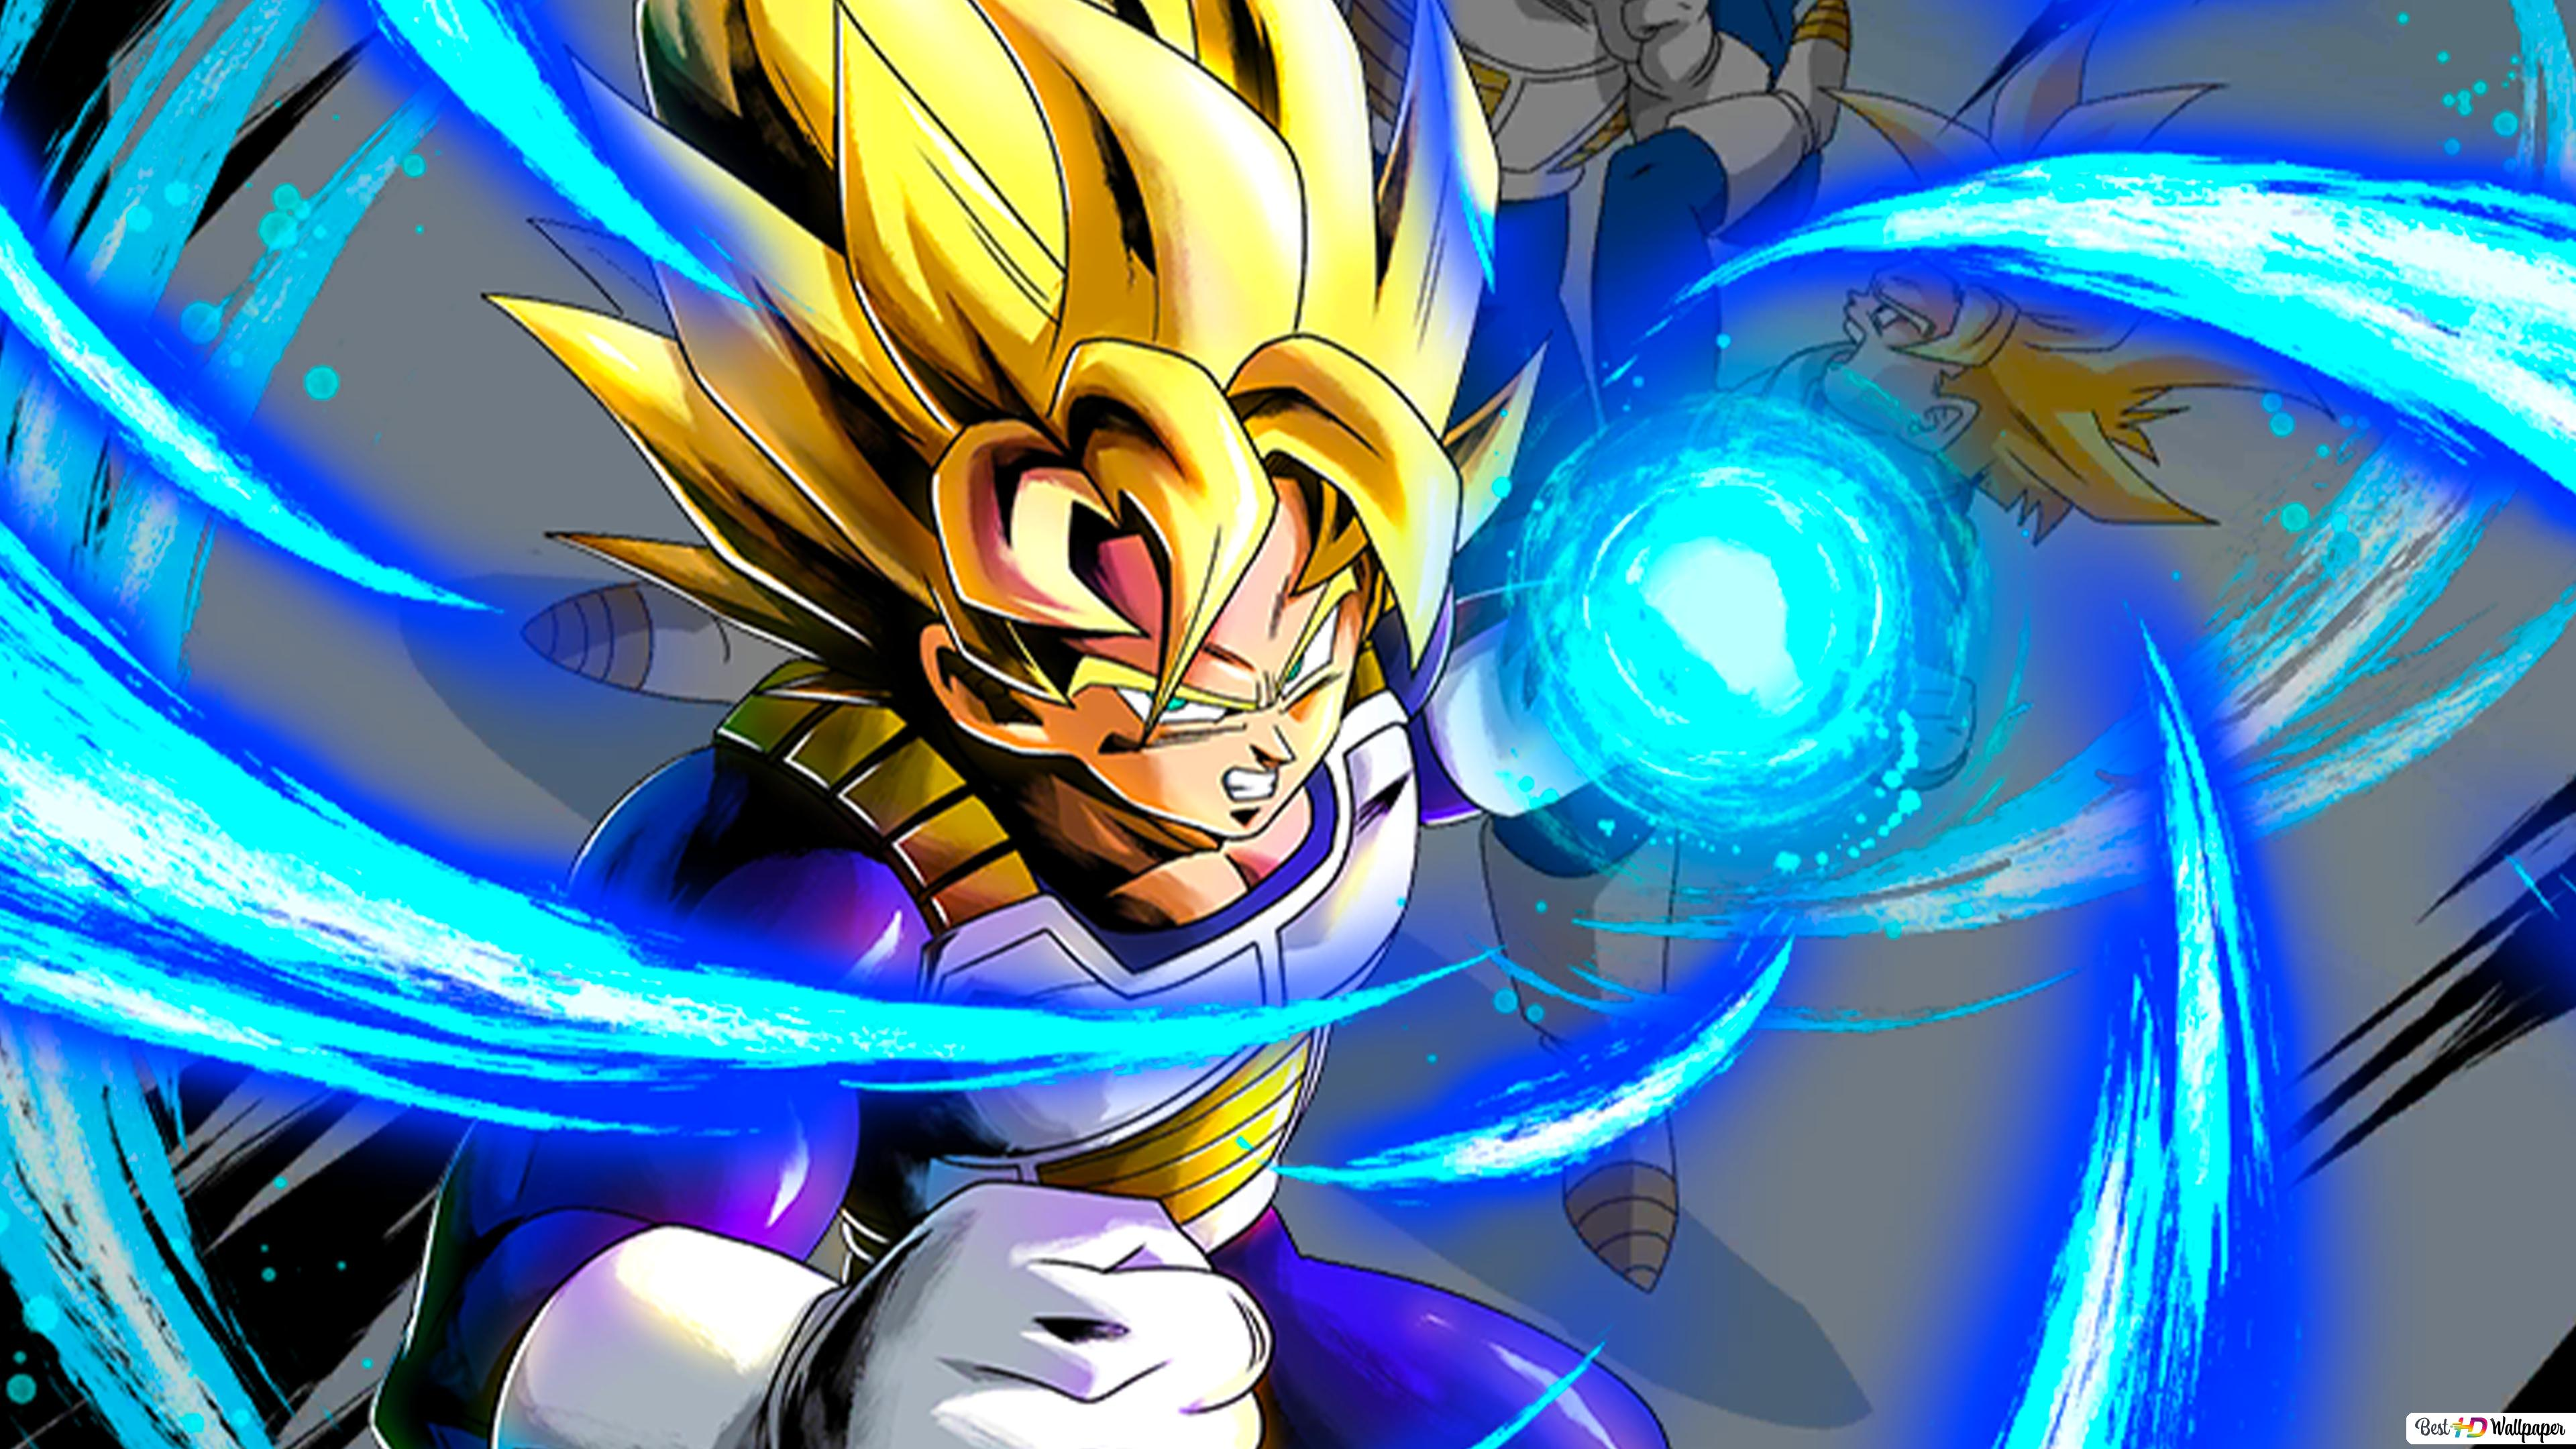 Super Saiyan Goku Saiyan Armor Suit From Dragon Ball Z Dragon Ball Legends Arts For Desktop Hd Wallpaper Download 28 issei hyoudou hd wallpapers and background images. super saiyan goku saiyan armor suit